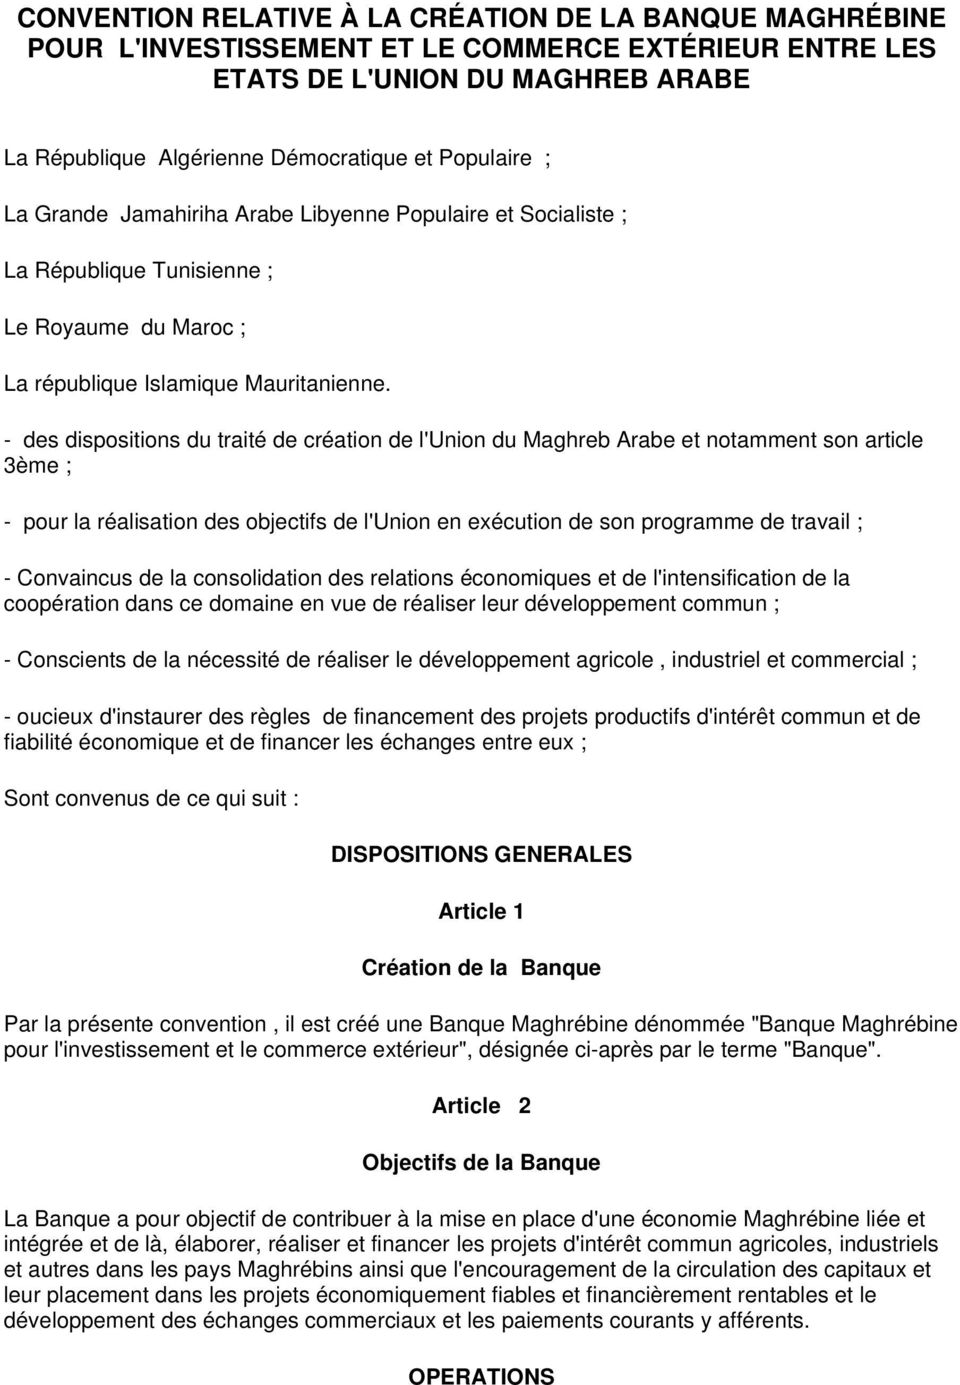 Convention relative la cr ation de la banque maghr bine for Banque algerienne du commerce exterieur